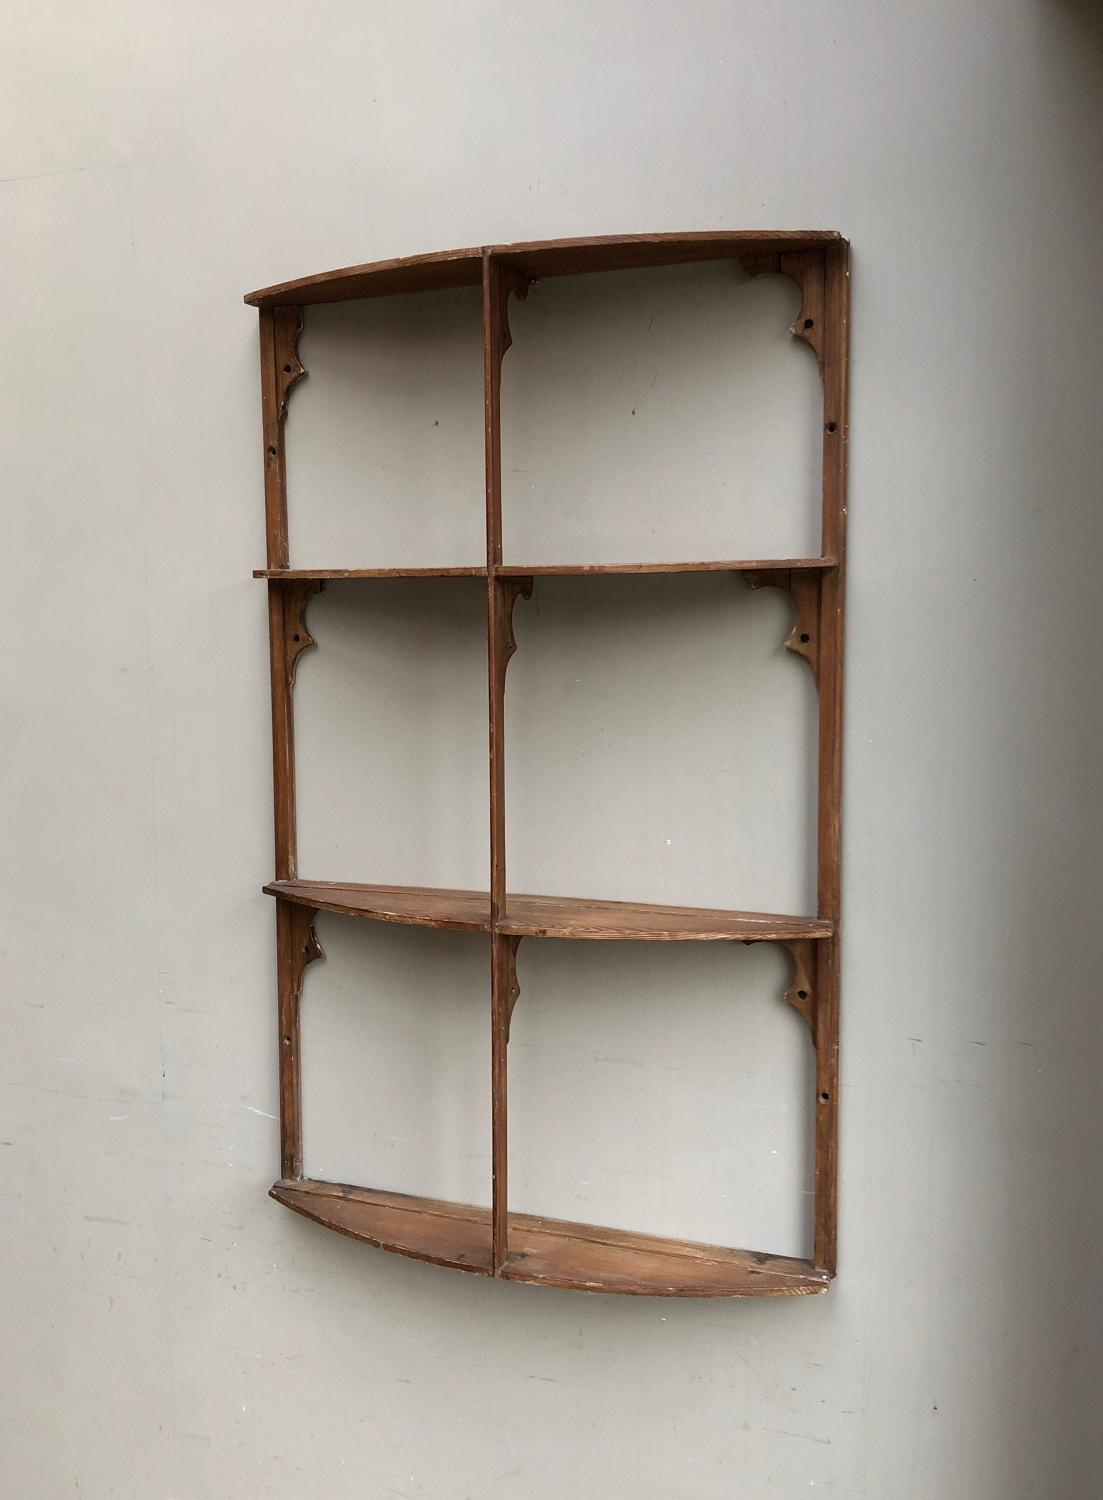 Antique Pine Four Tier Narrow Wall Shelves - Unusual